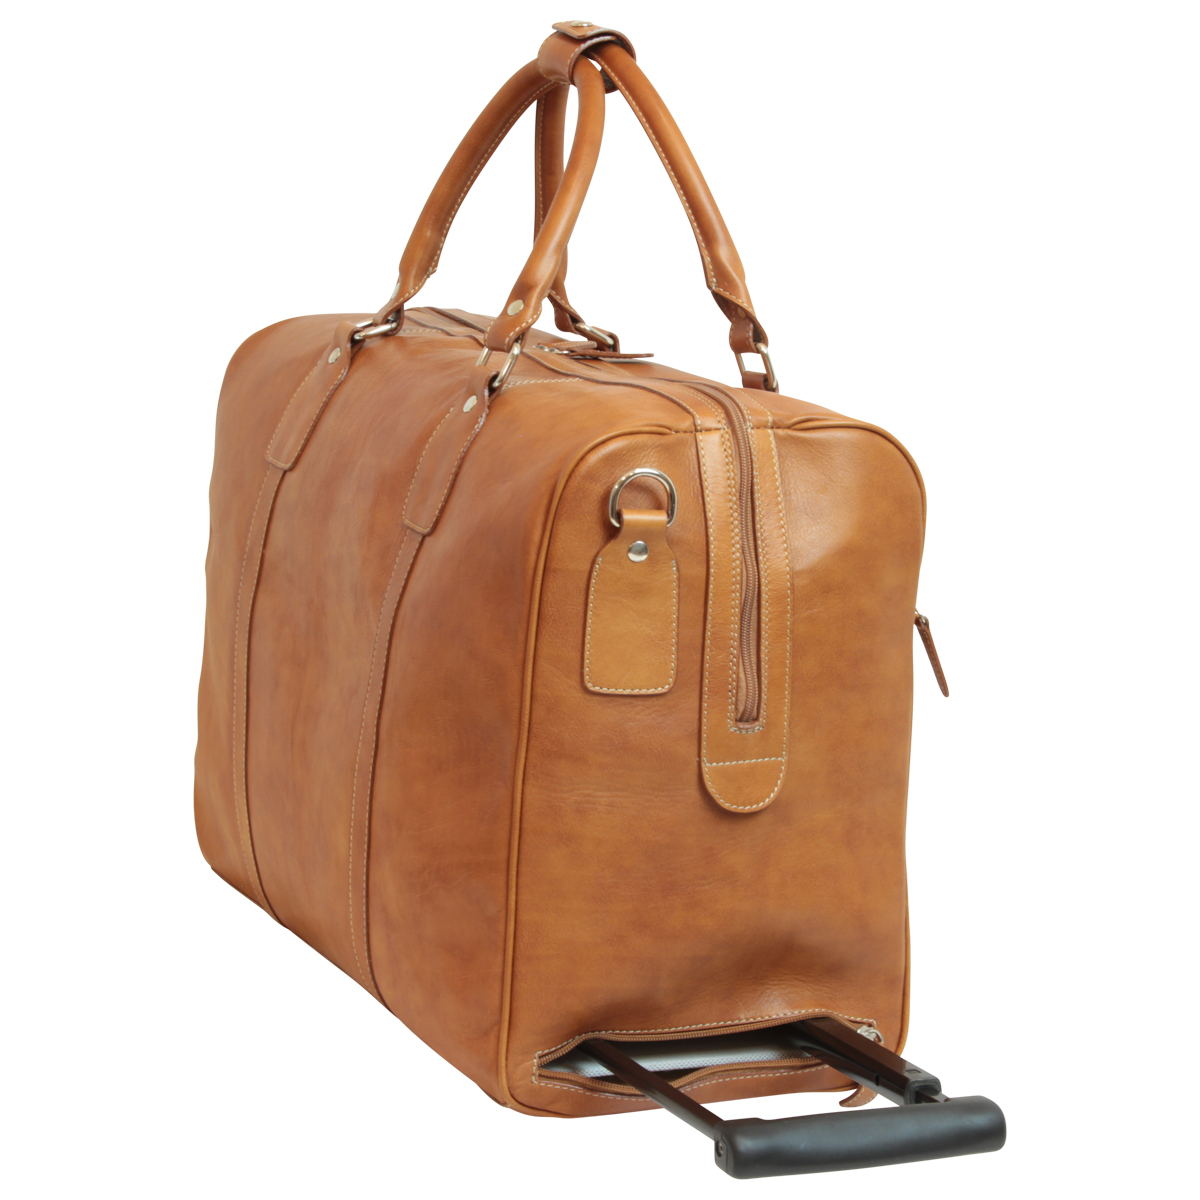 Oiled Calfskin leather duffel bag - Colonial Brown | 001561CO E | Old Angler Firenze